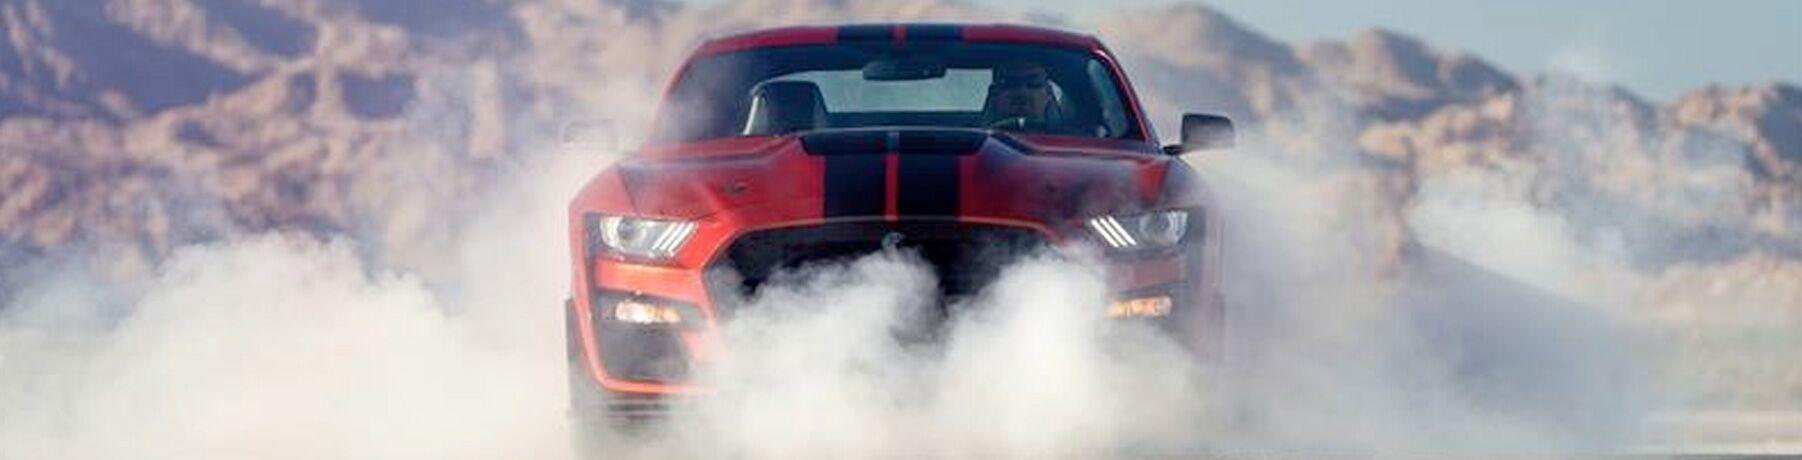 2020 Ford Mustang on a smoky racetrack